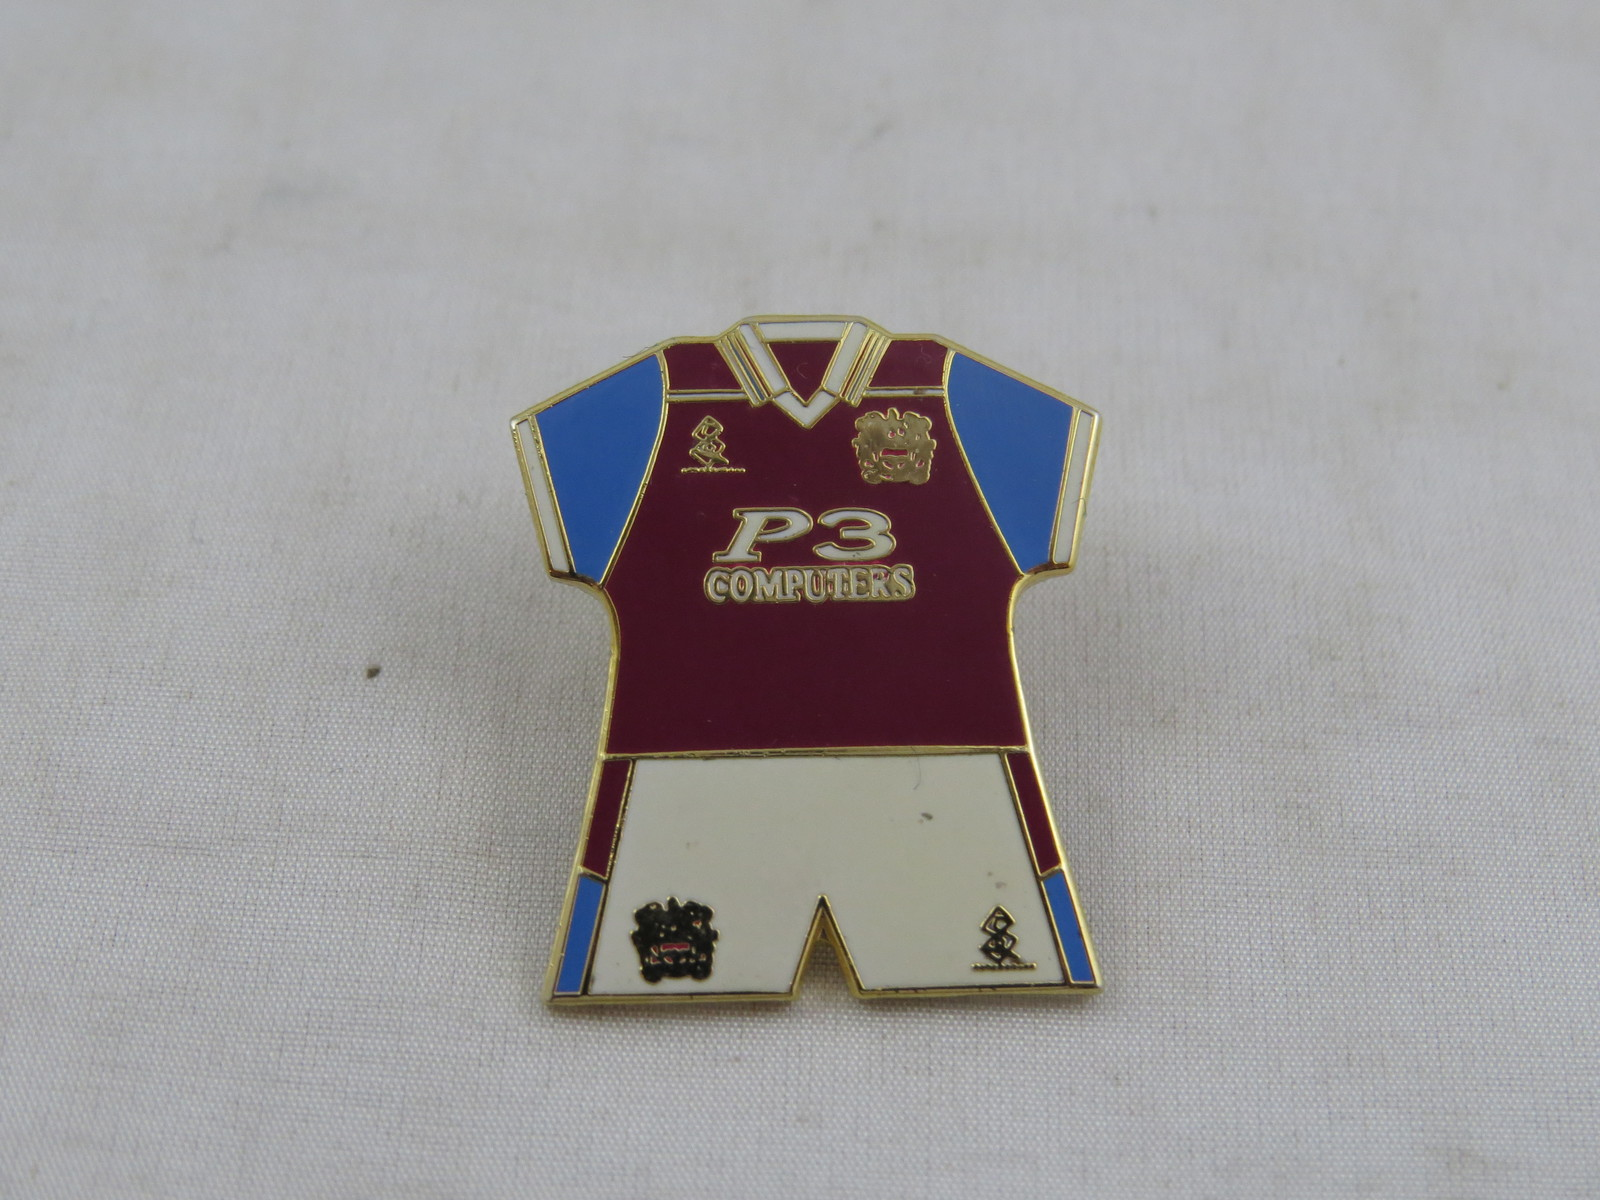 Burnely Home Kit Pin - 1999 Uniform - Stamped Pin